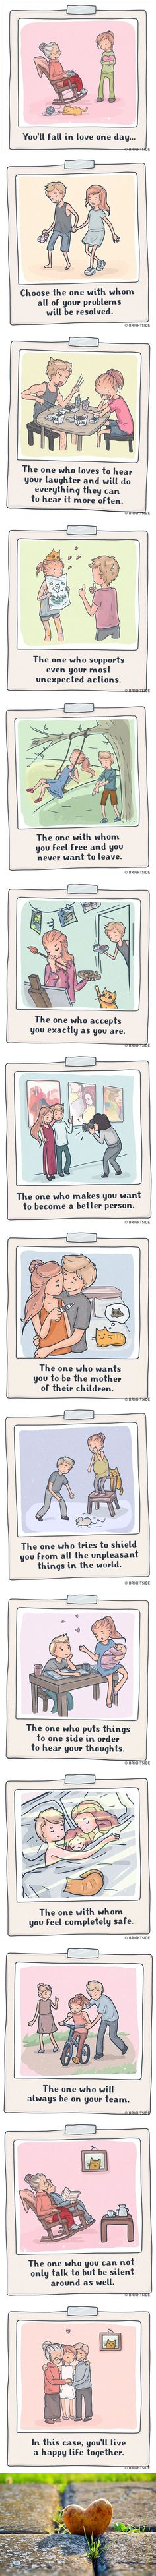 14 Charming Illustrations That Sum Up Perfectly What True Love Is